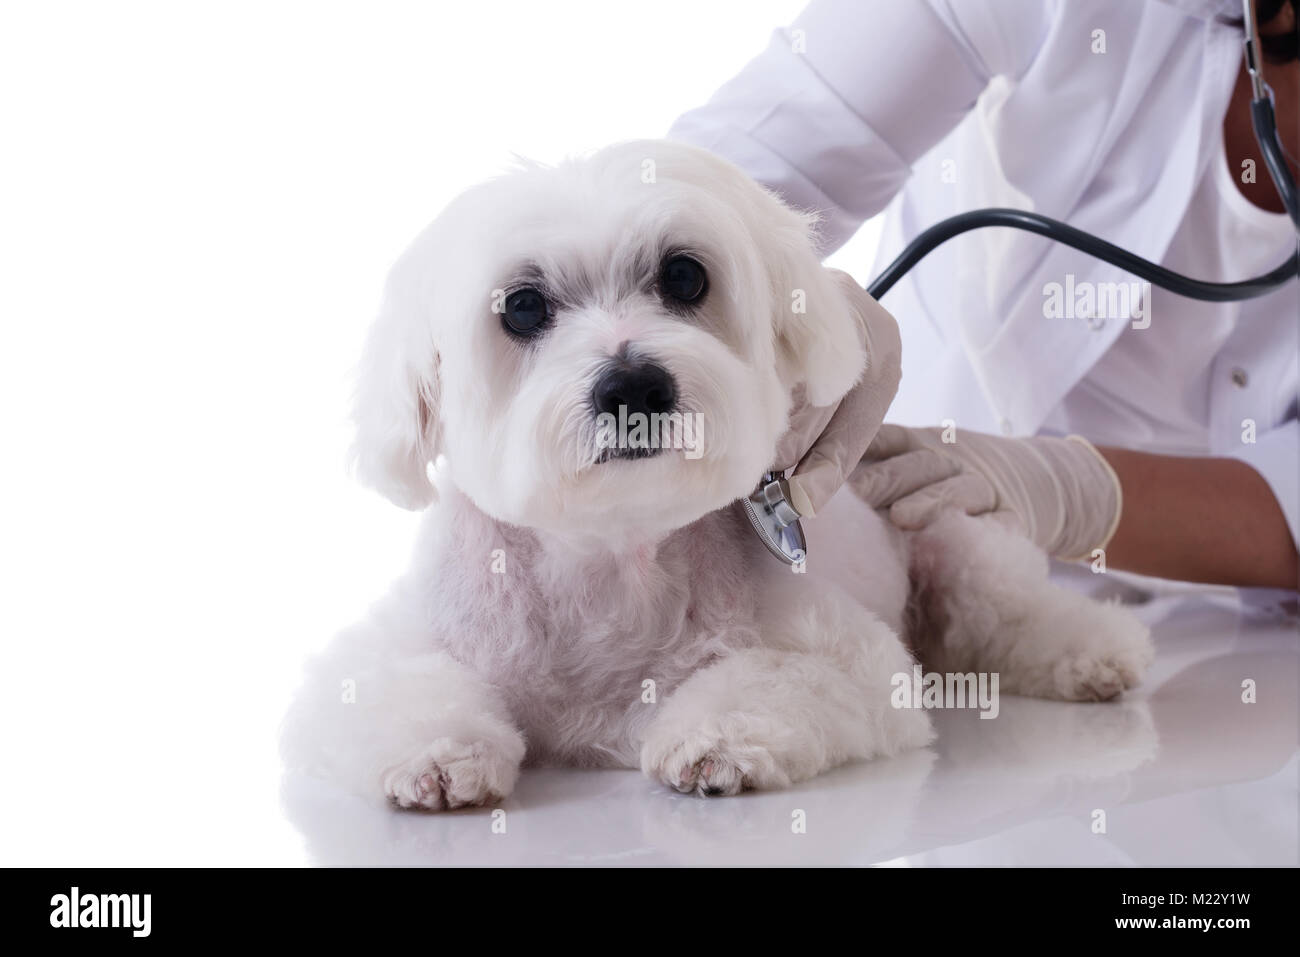 Veterinarian examining a cute maltese dog with a stethoscope on the table close up,isolated over white background - Stock Image